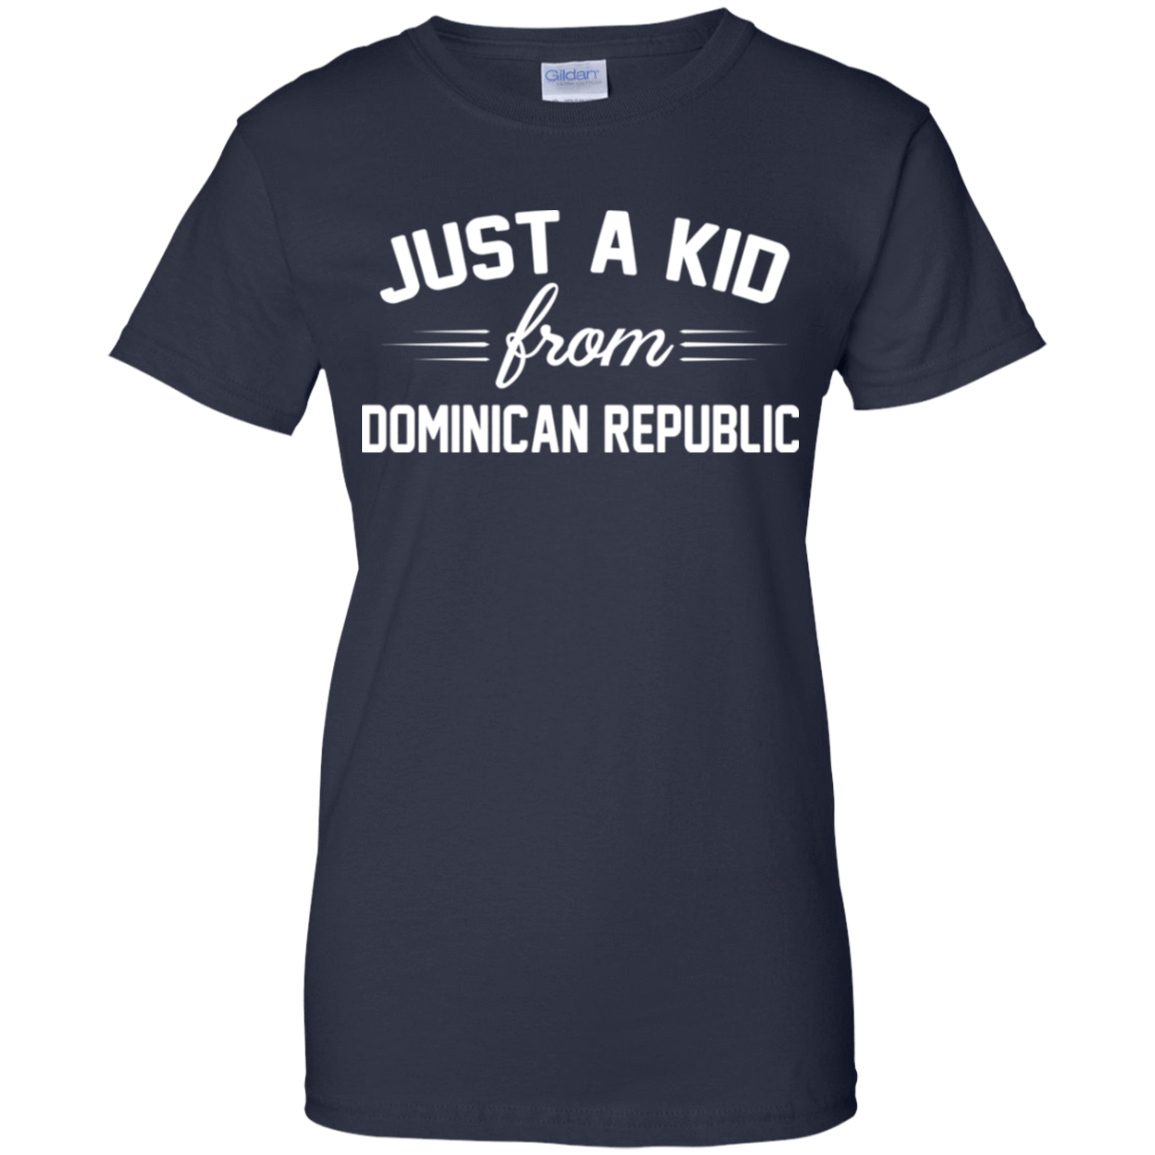 Just a Kid Store | Dominican Republic T-Shirts, Hoodie, Tank 939-9259-72092751-44765 - Tee Ript